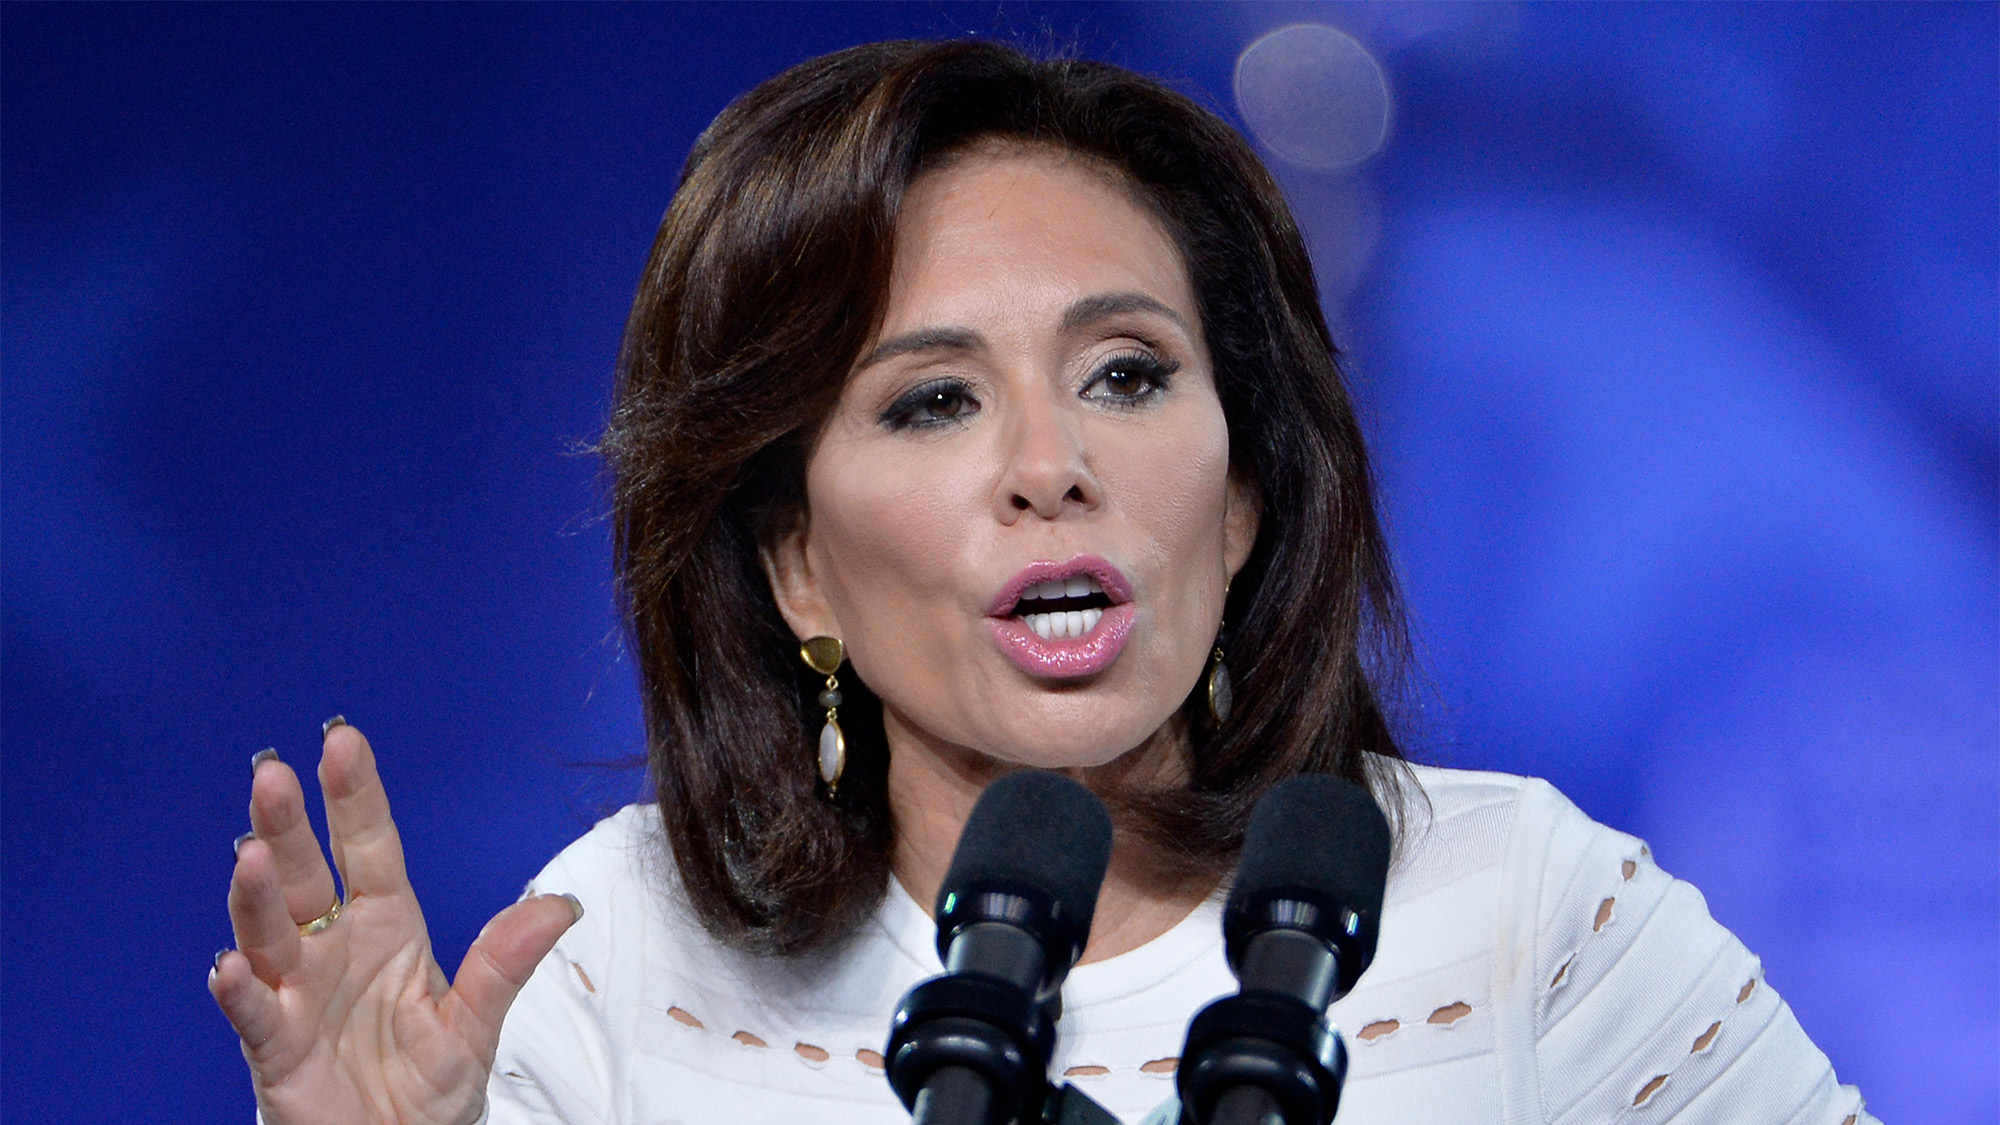 Jeanine Pirro Ethnicity, Race, and Nationality